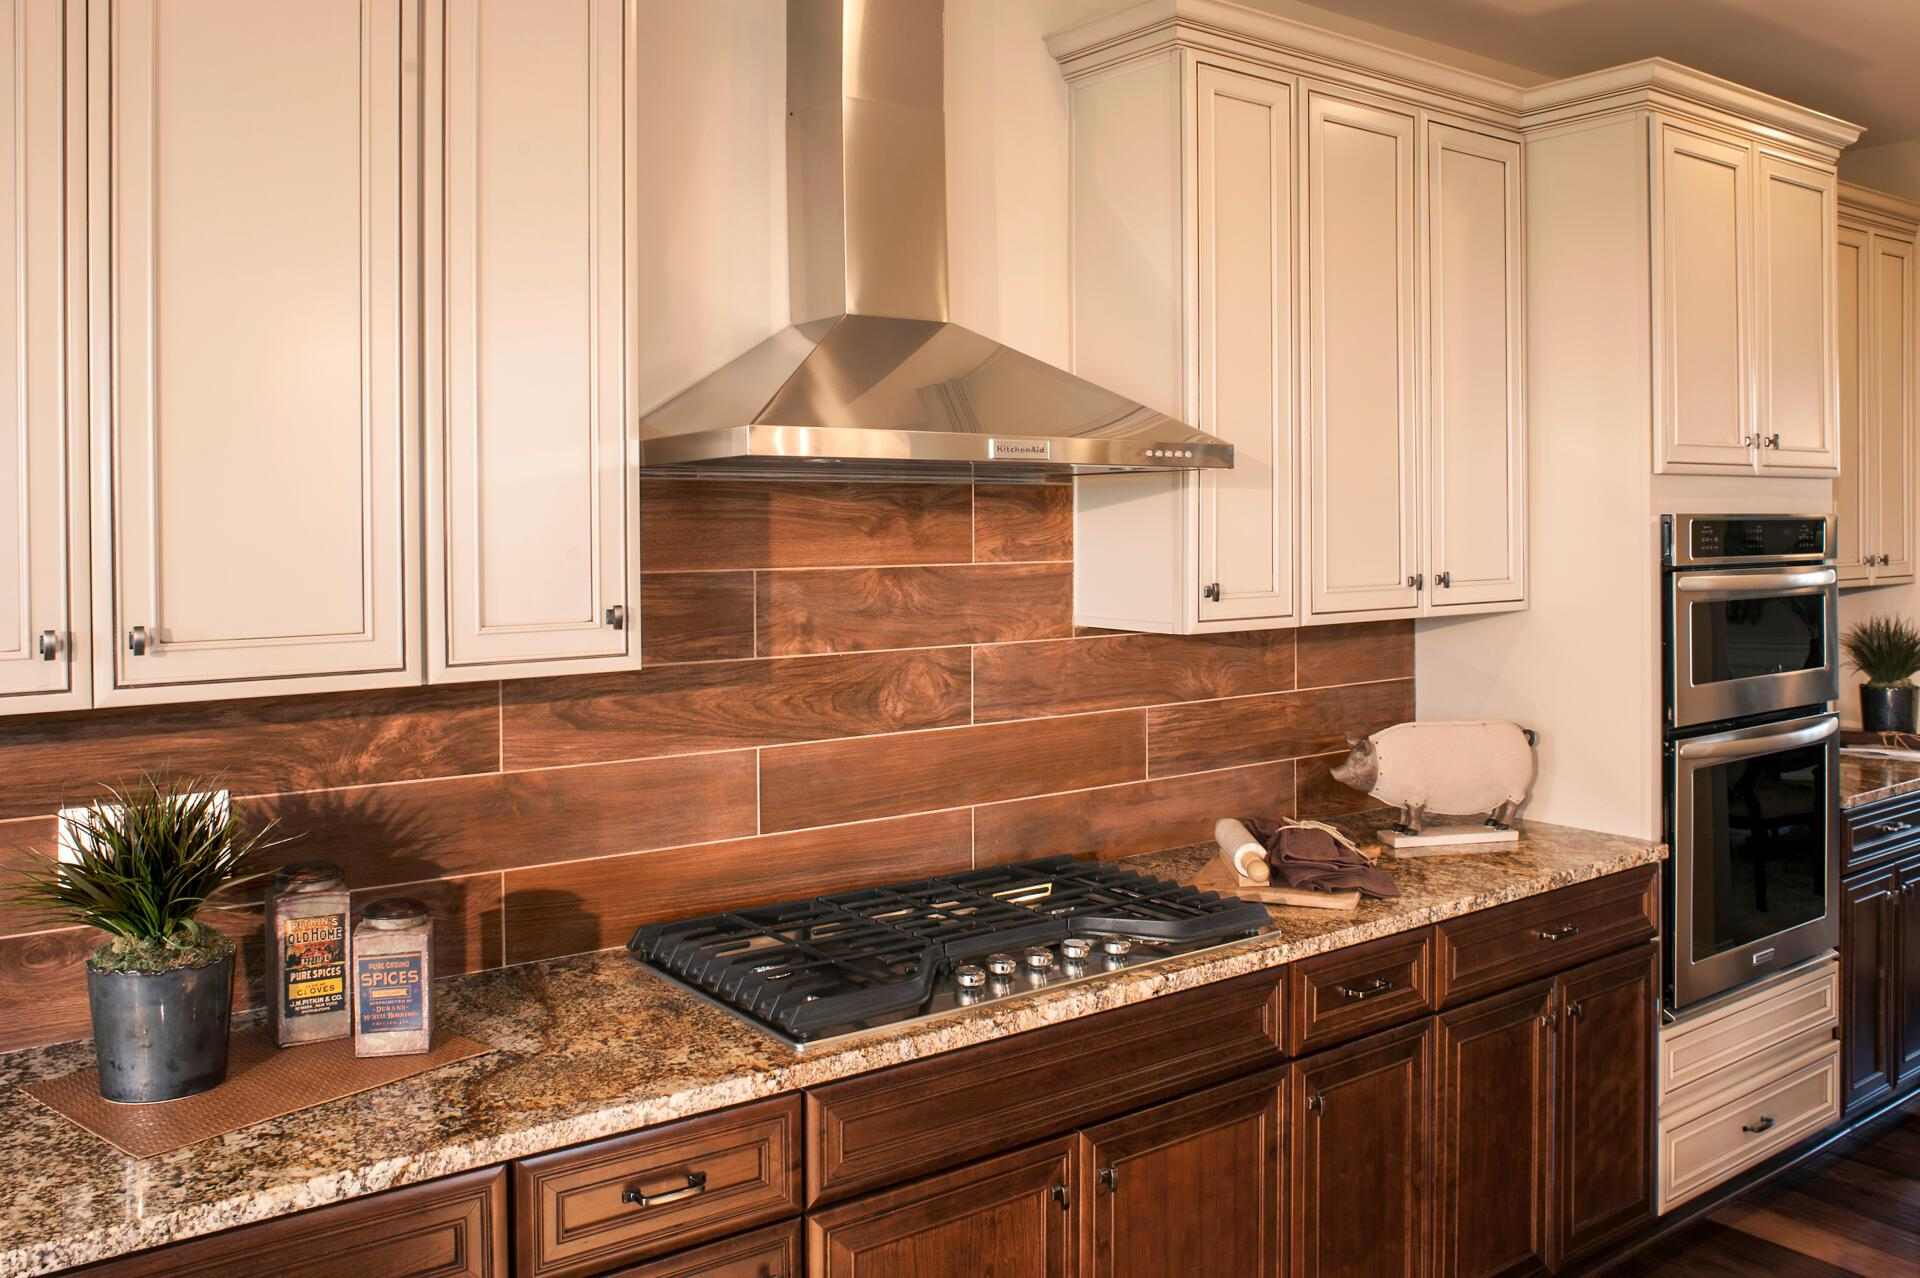 Kitchen featured in the Ash Lawn By Drees Homes in Cincinnati, OH